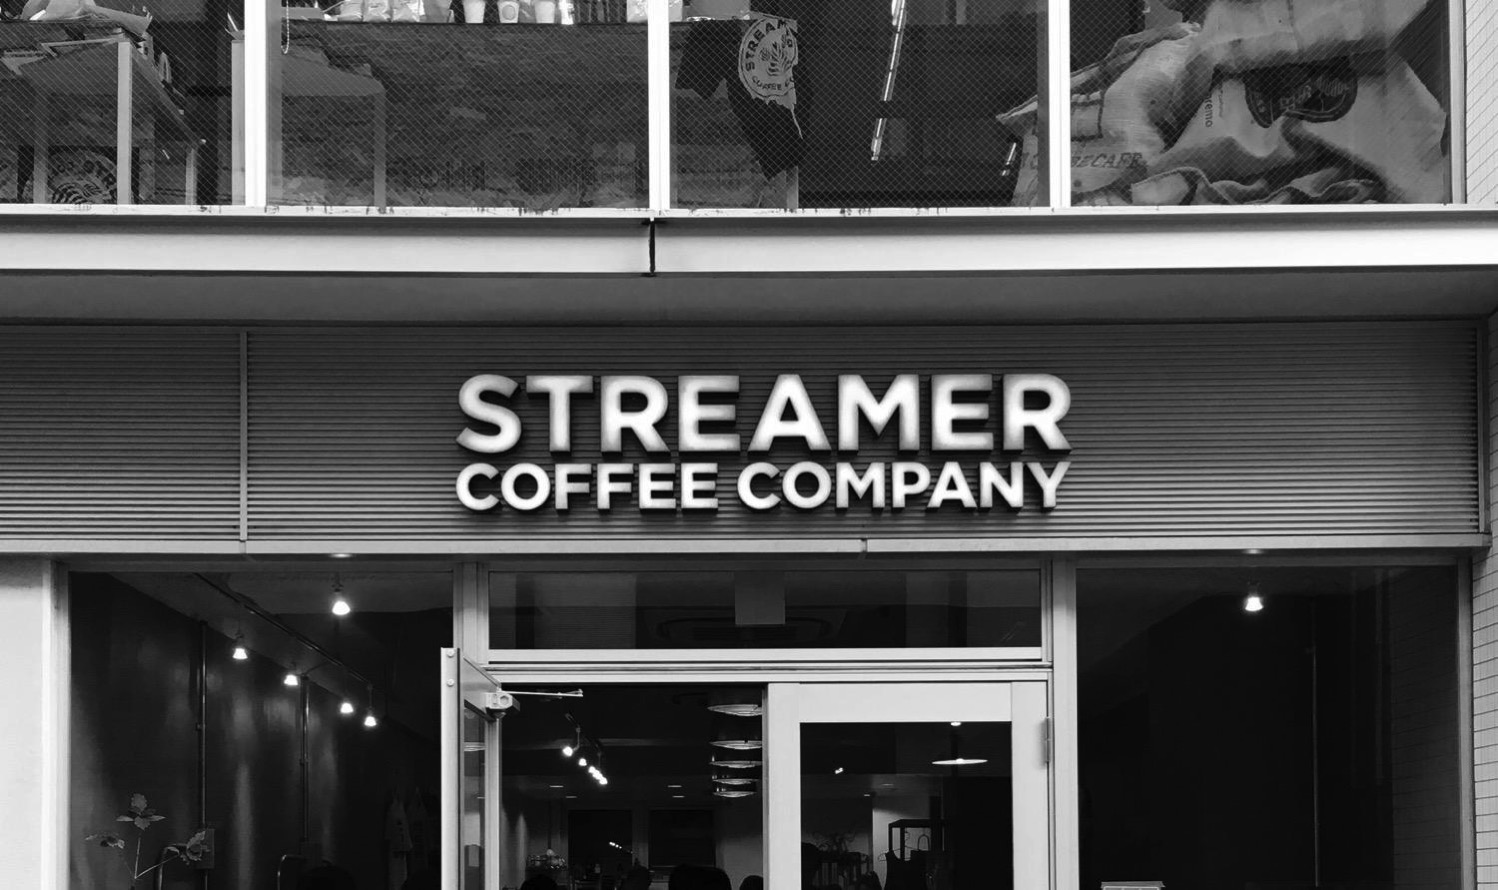 Streamer coffee company5